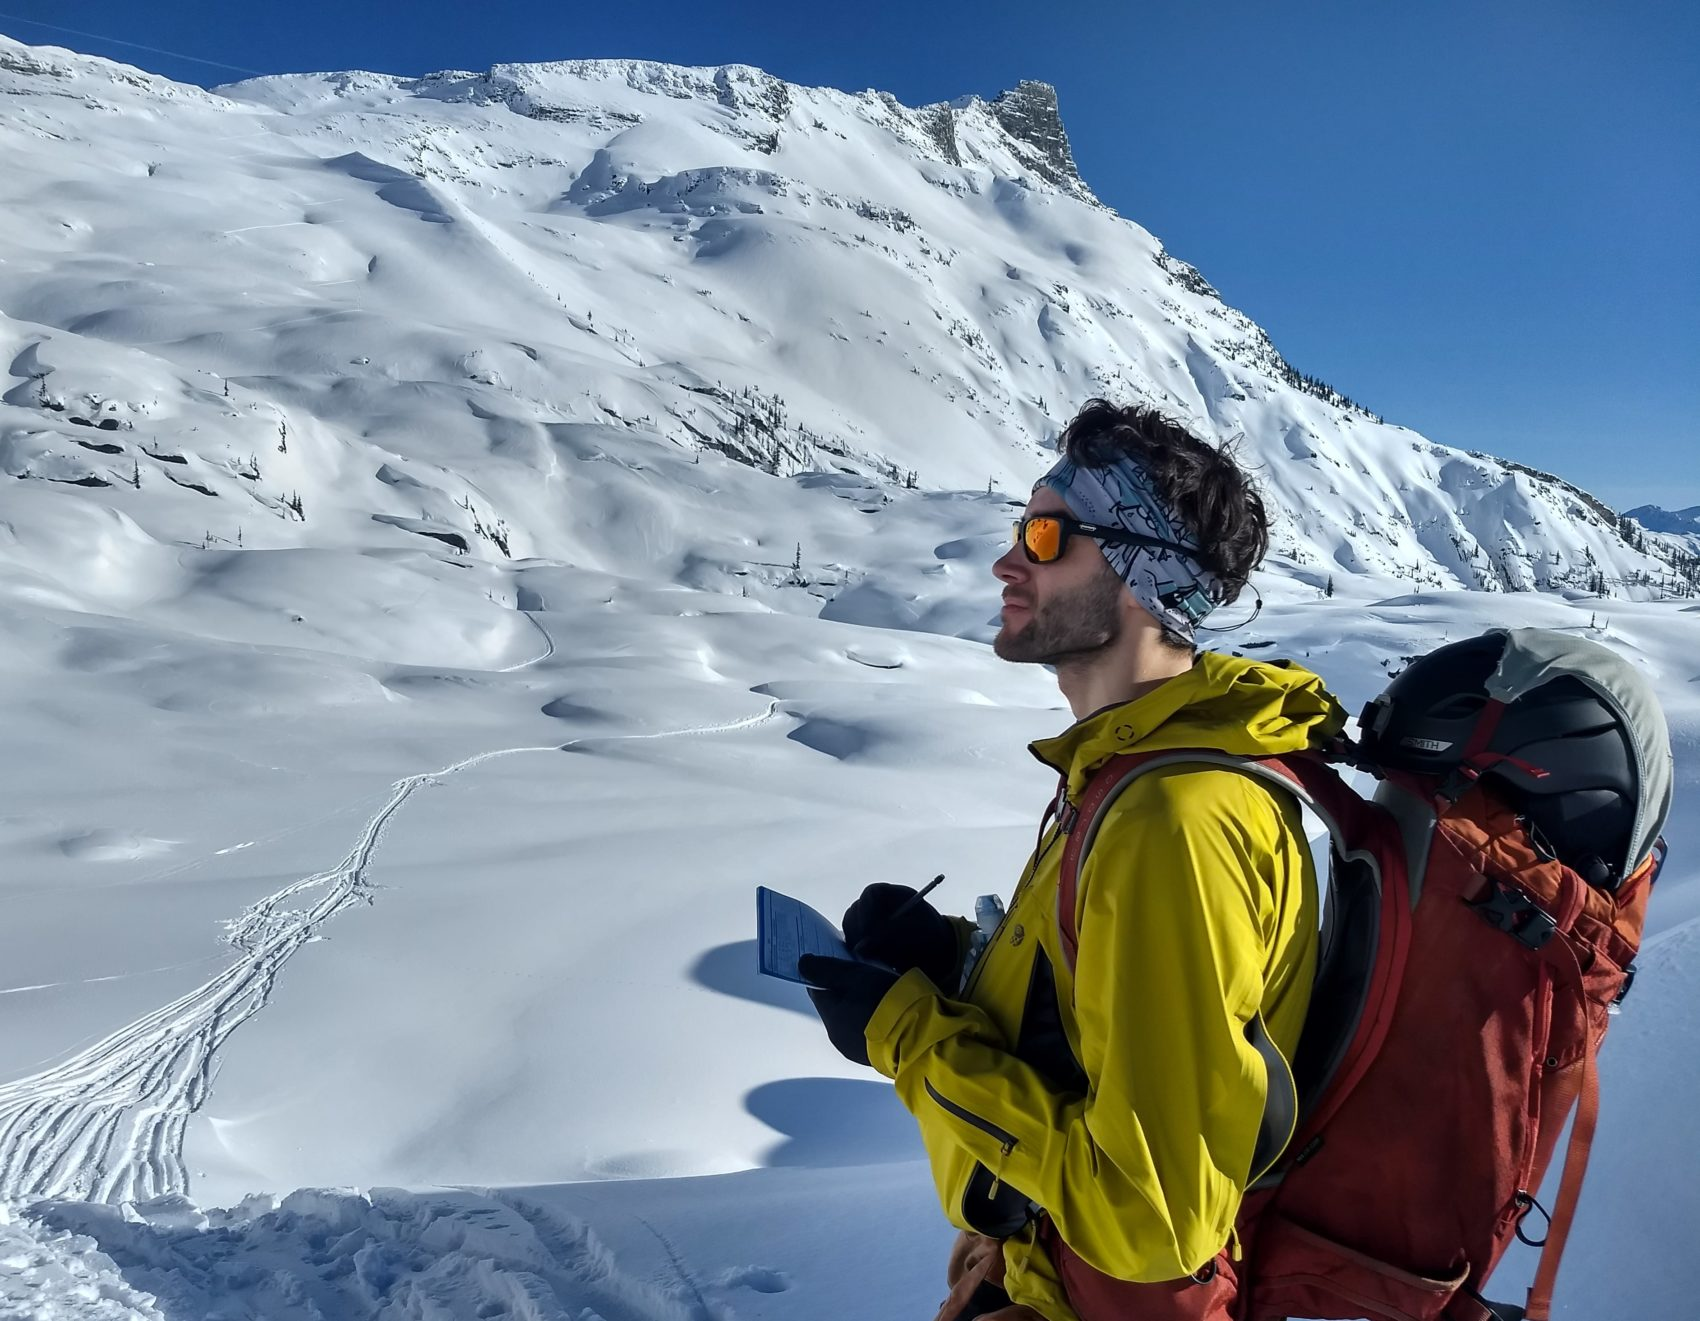 backcountry skier checking out avalanche danger